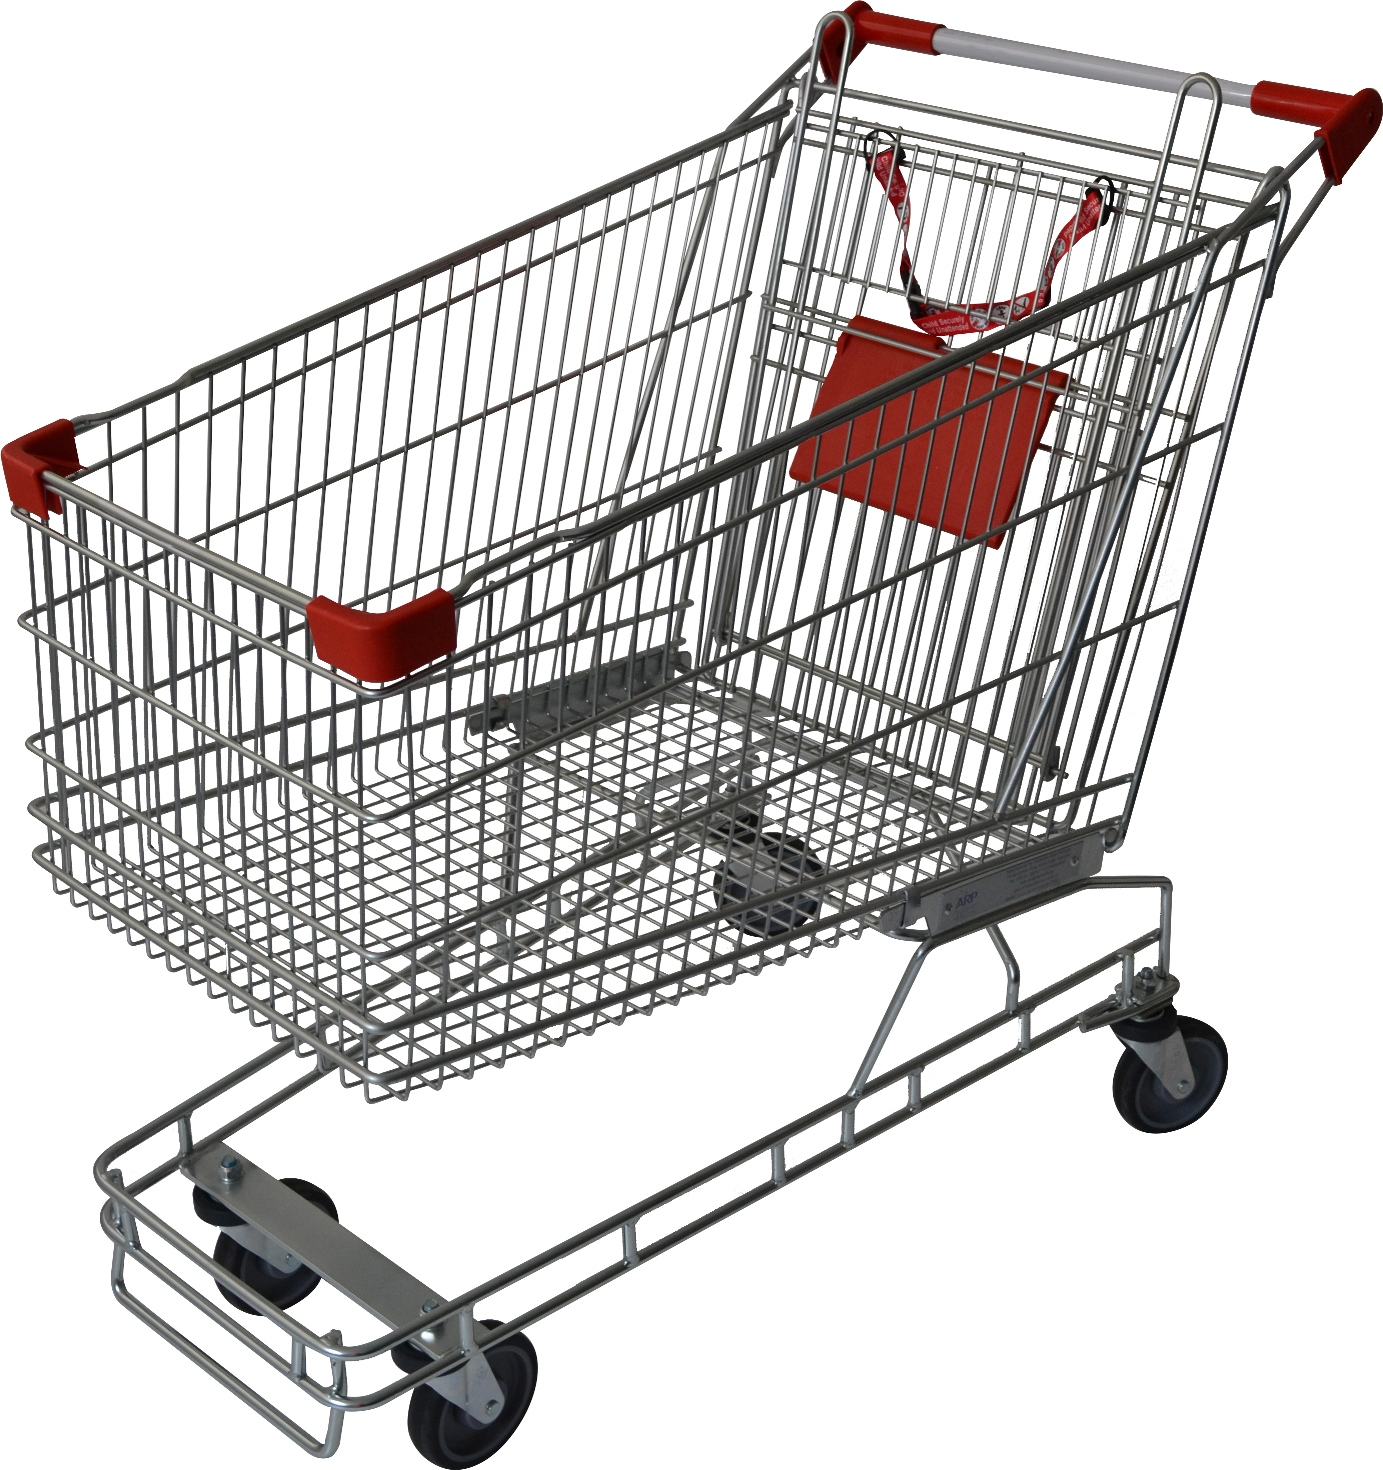 Large size grocery shopping trolley for sale. With 212 litre capacity, its suitable for supermarkets, fruit shops & retail stores. It comes with child seat, restraint & 4 x TPE castors. Available now, ships Australia wide!